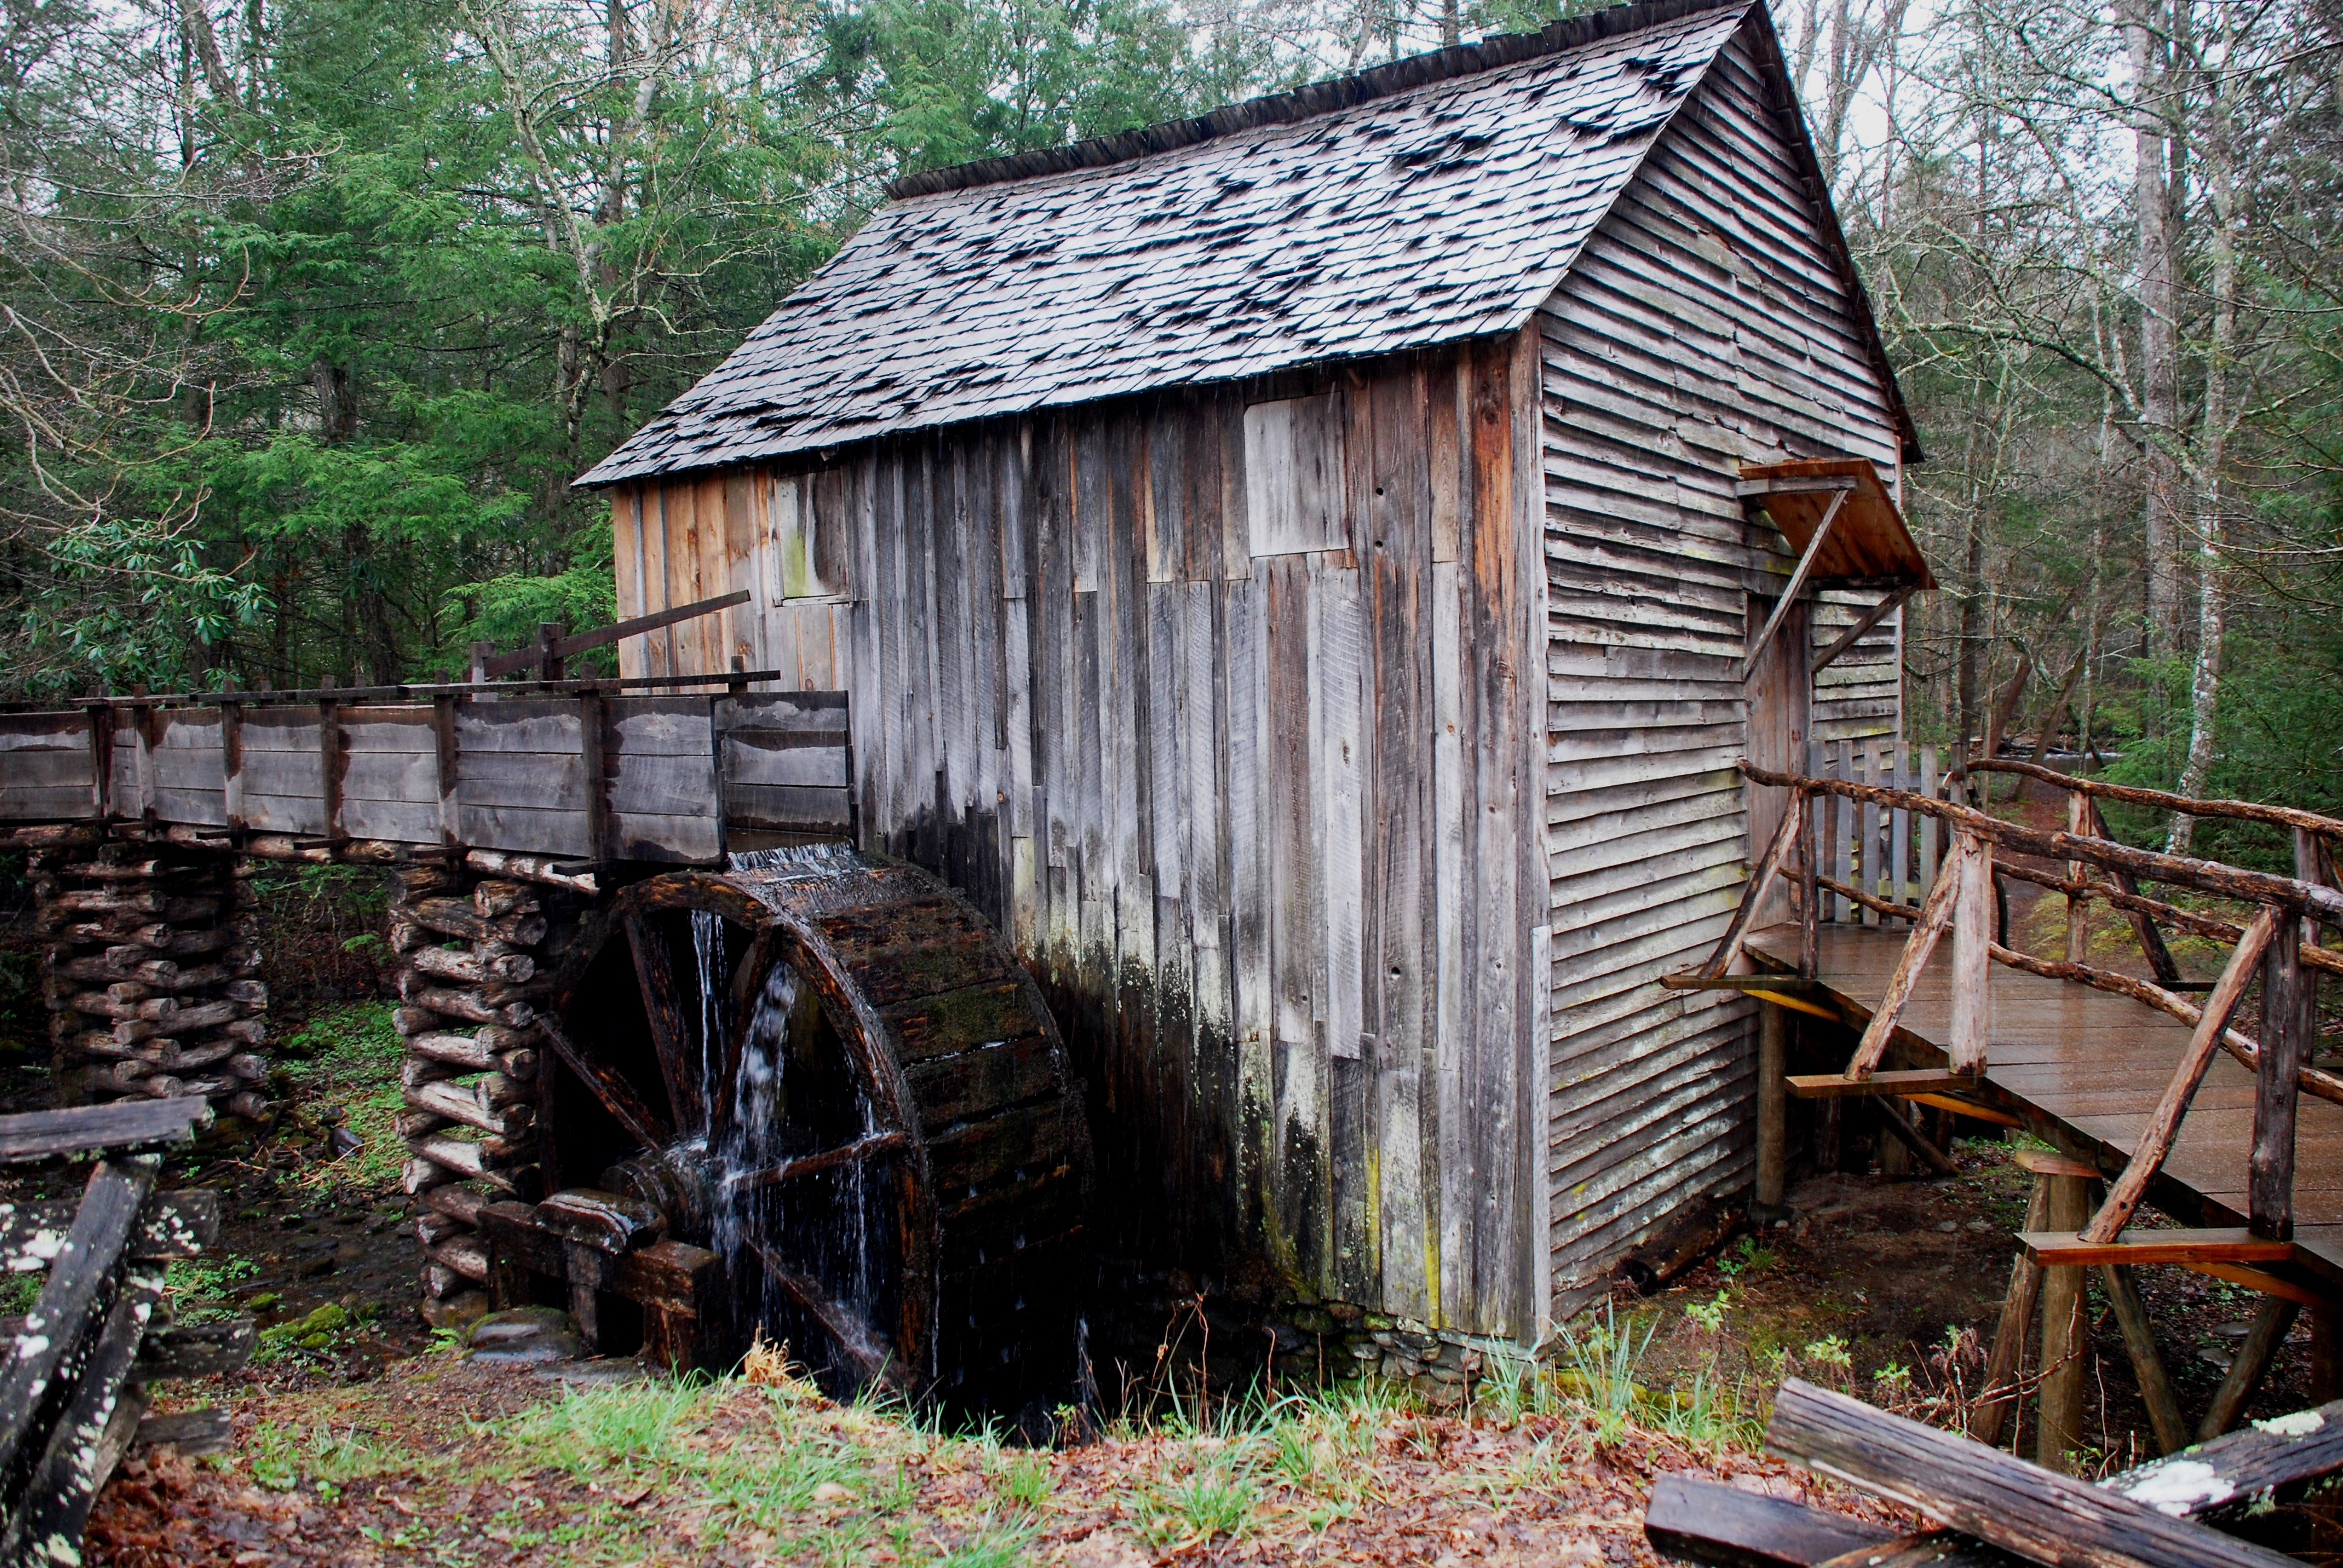 Smoky_Mountains_-_Cable_Mill_at_Cades_Cove.JPG